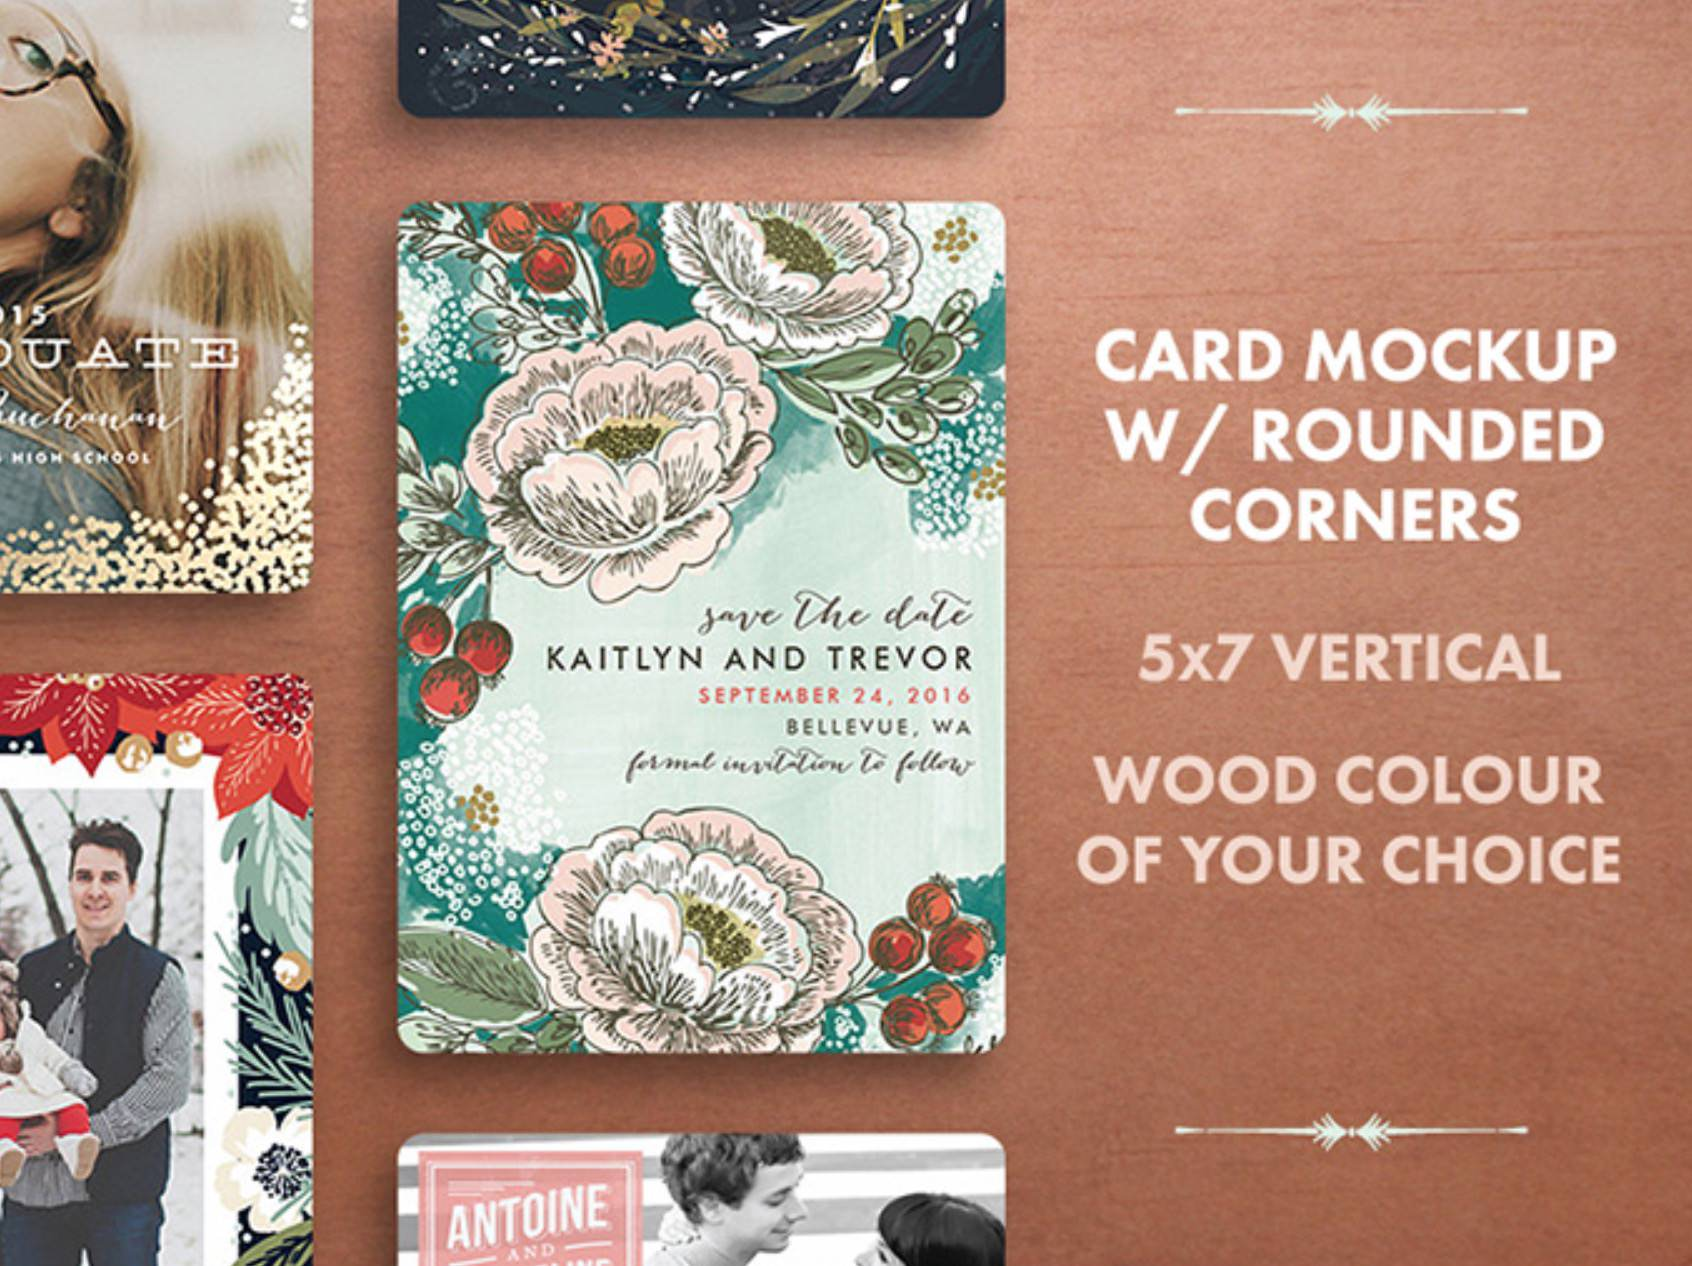 Free holiday card mockups available for download.